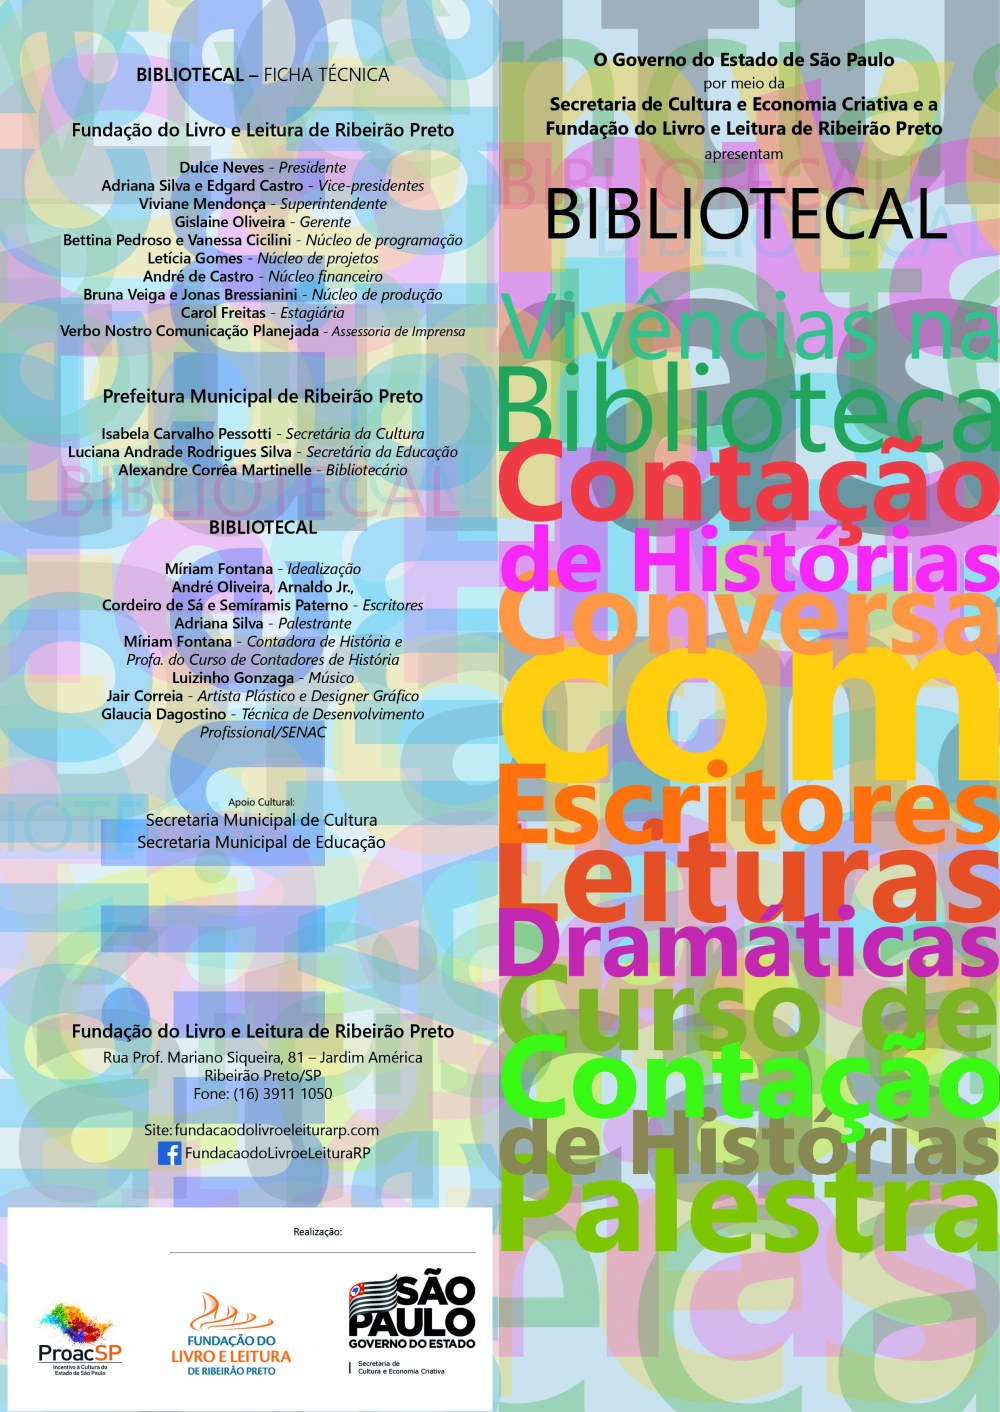 Folder Bibliotecal Impress+úo ext.jpg